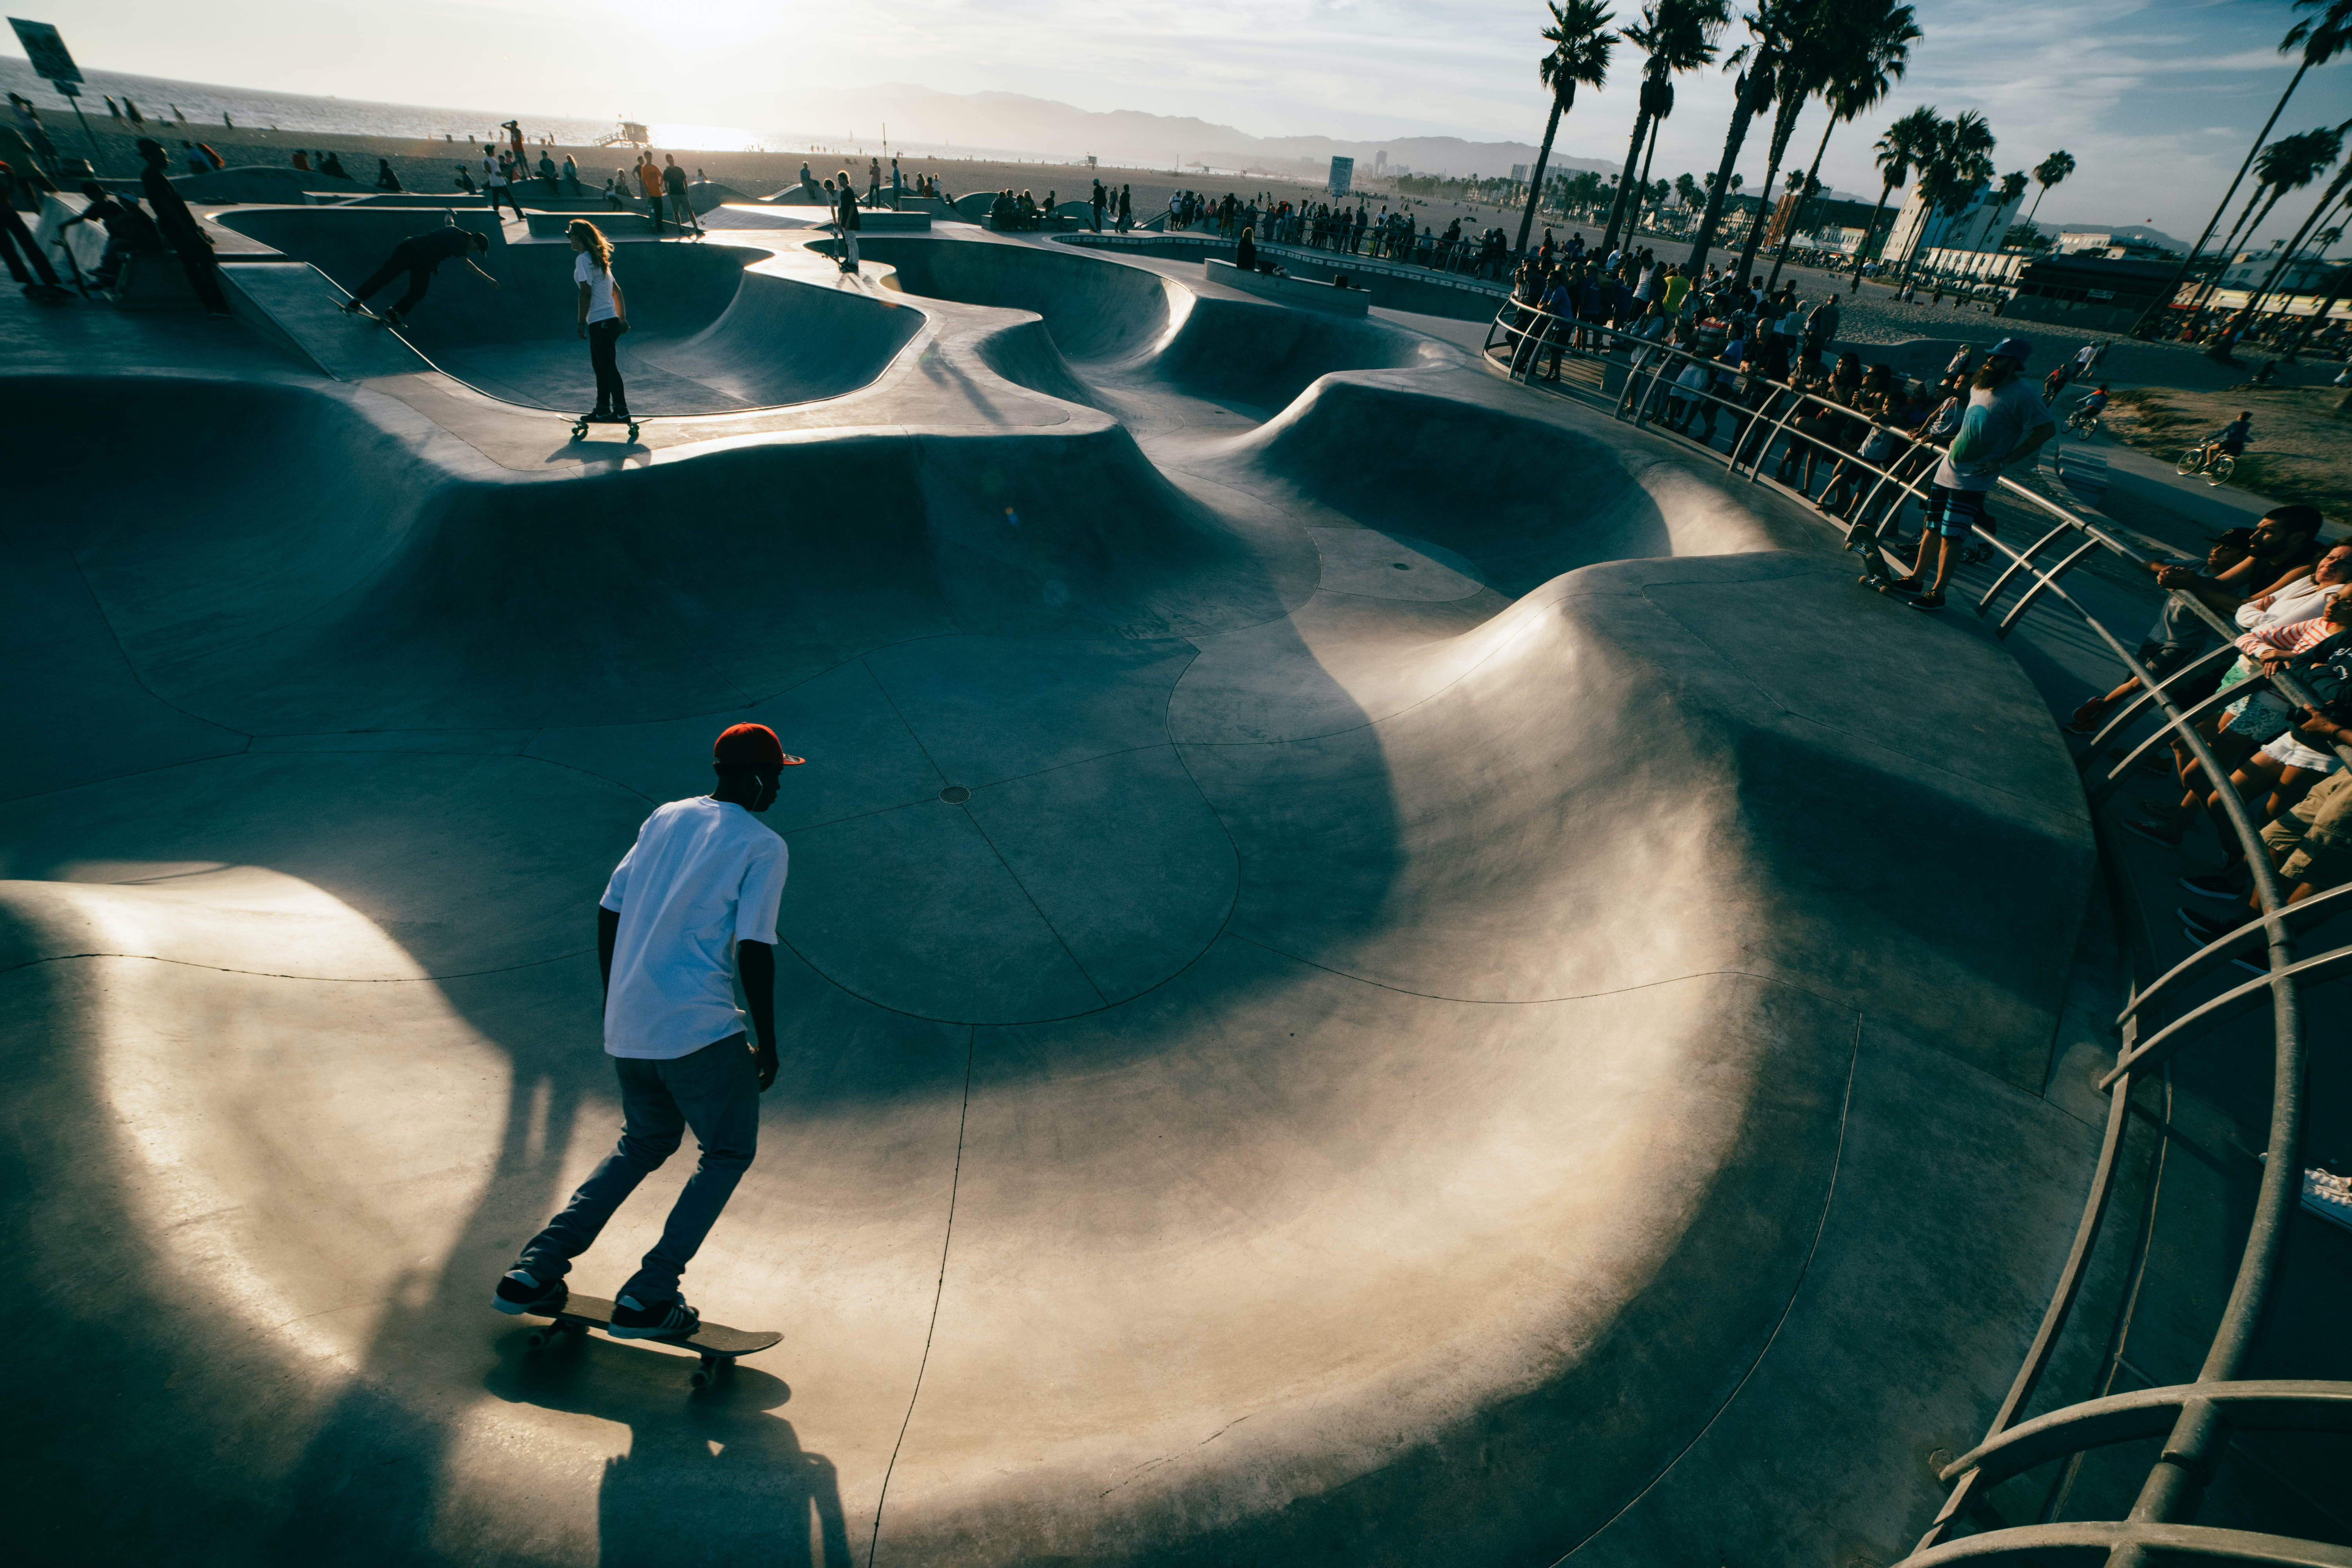 Man skateboarding in Venice Skate Park during sunset